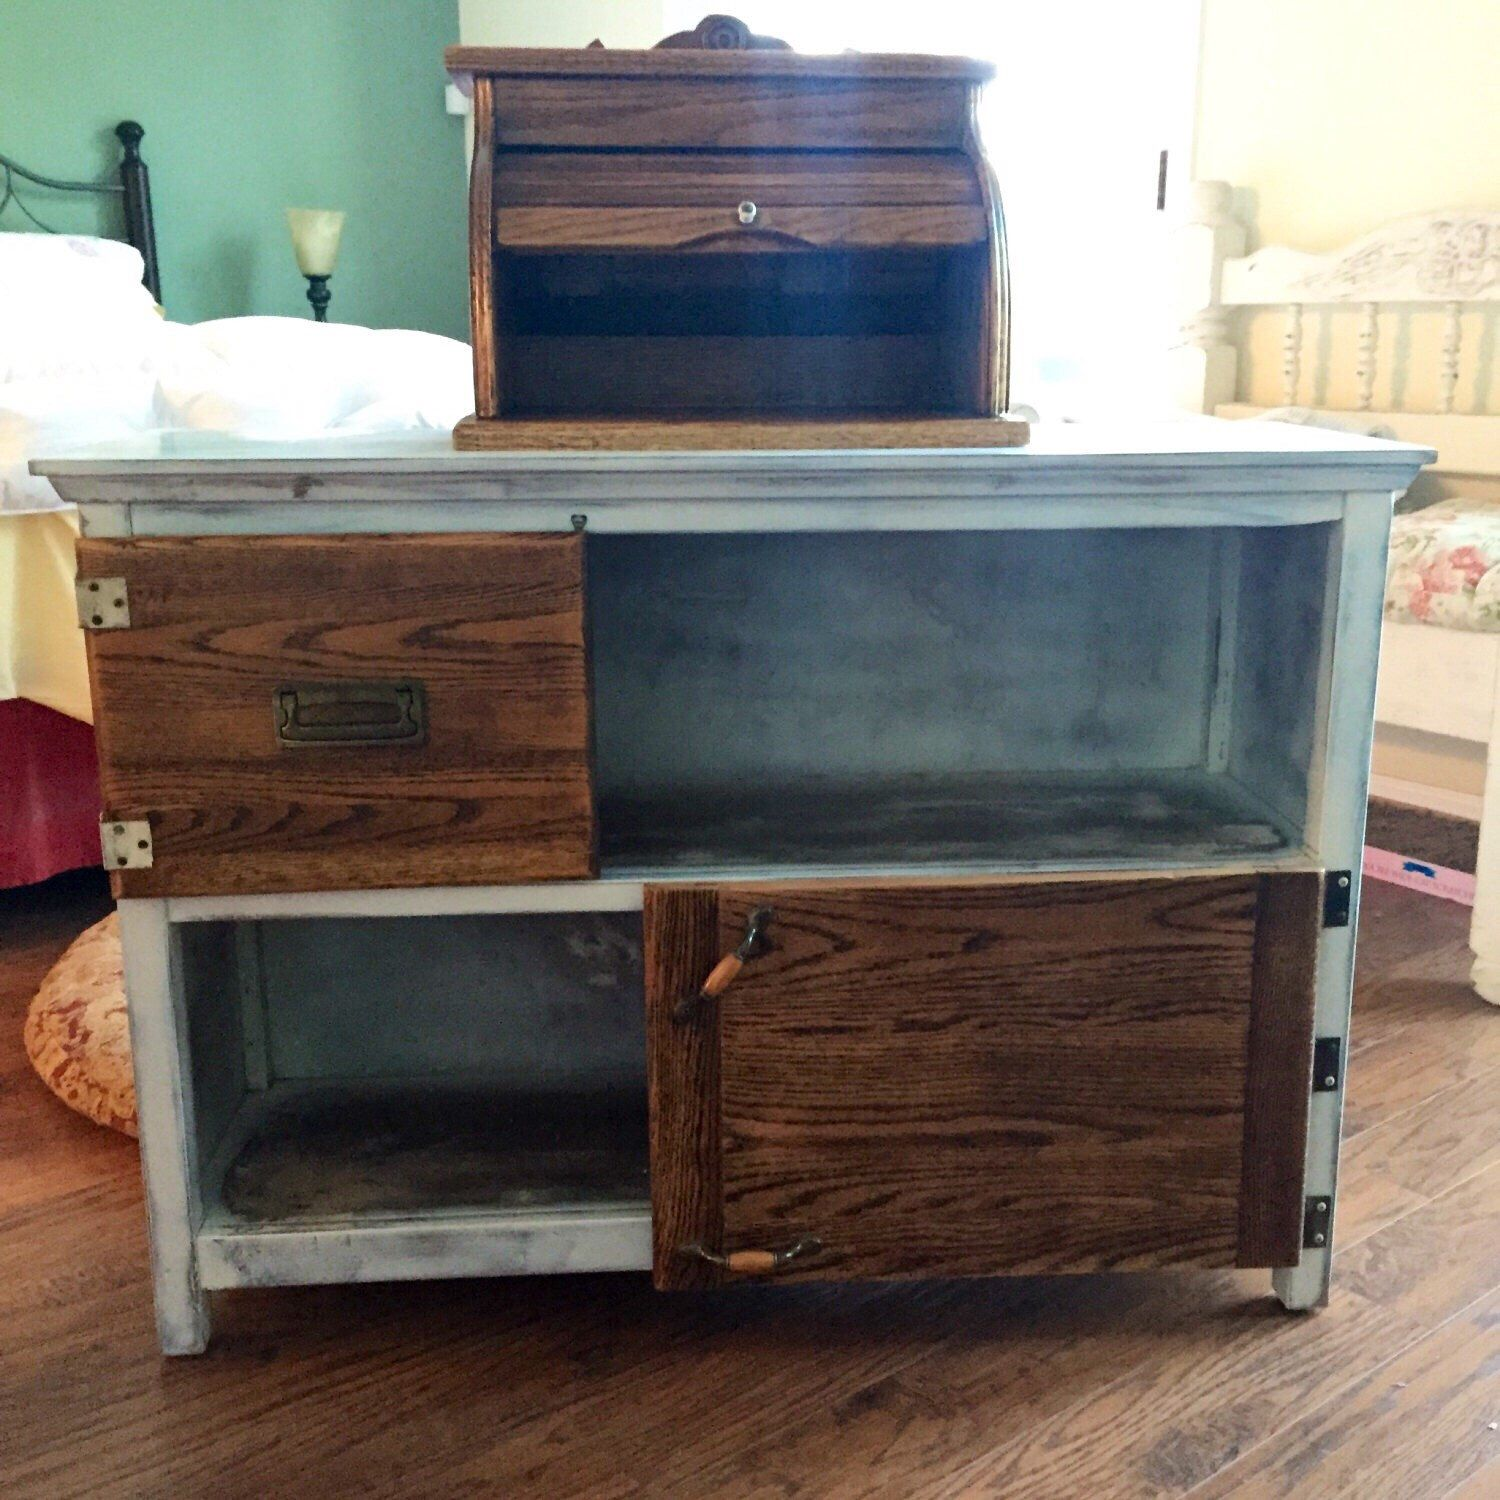 SOLD Country Kitchen Storage Cabinet white shabby chic sales